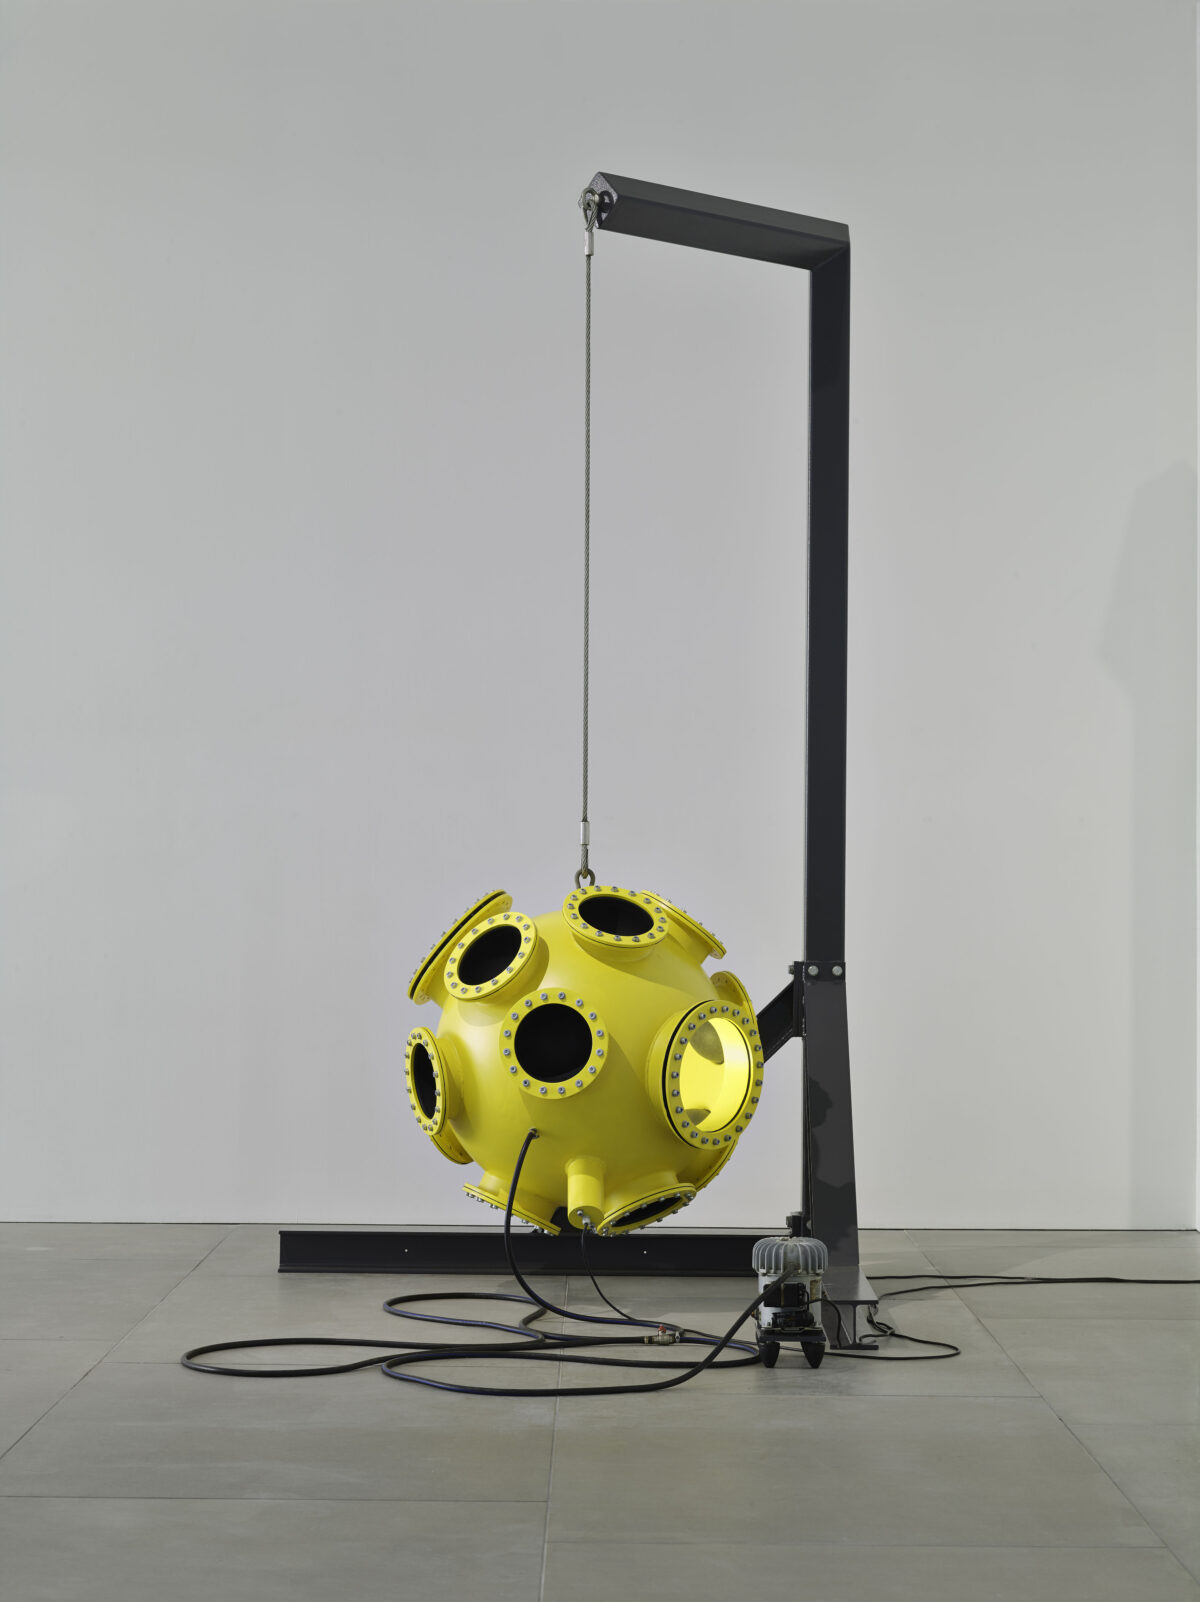 Andreas Schmitten Gereon Lepper And Mathias Lanfer Curated By Tony Cragg 2015 Installation View 4